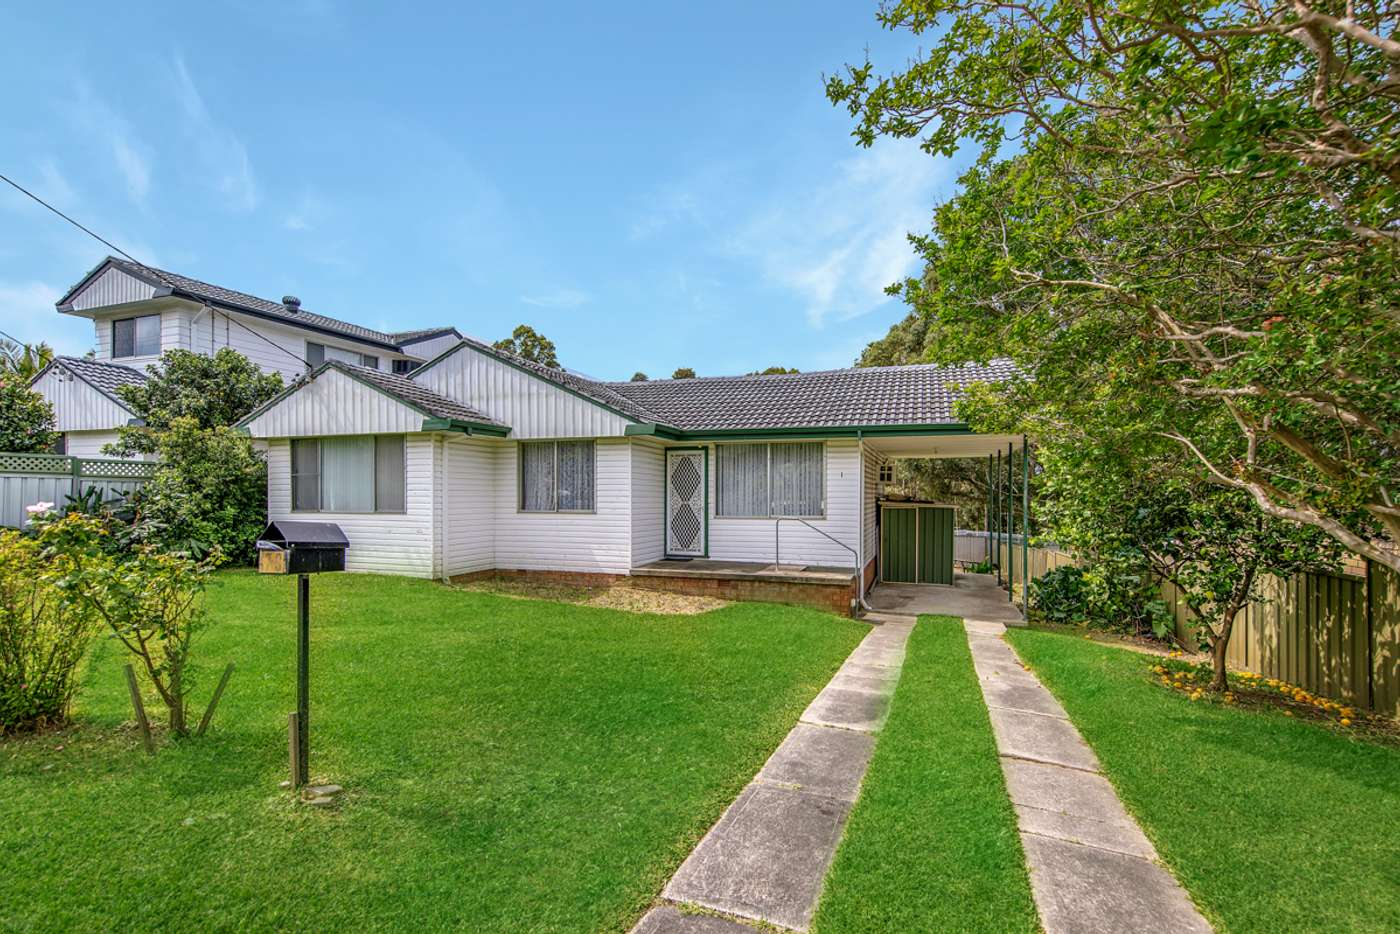 Main view of Homely house listing, 1 Lyndel Parade, Shortland NSW 2307